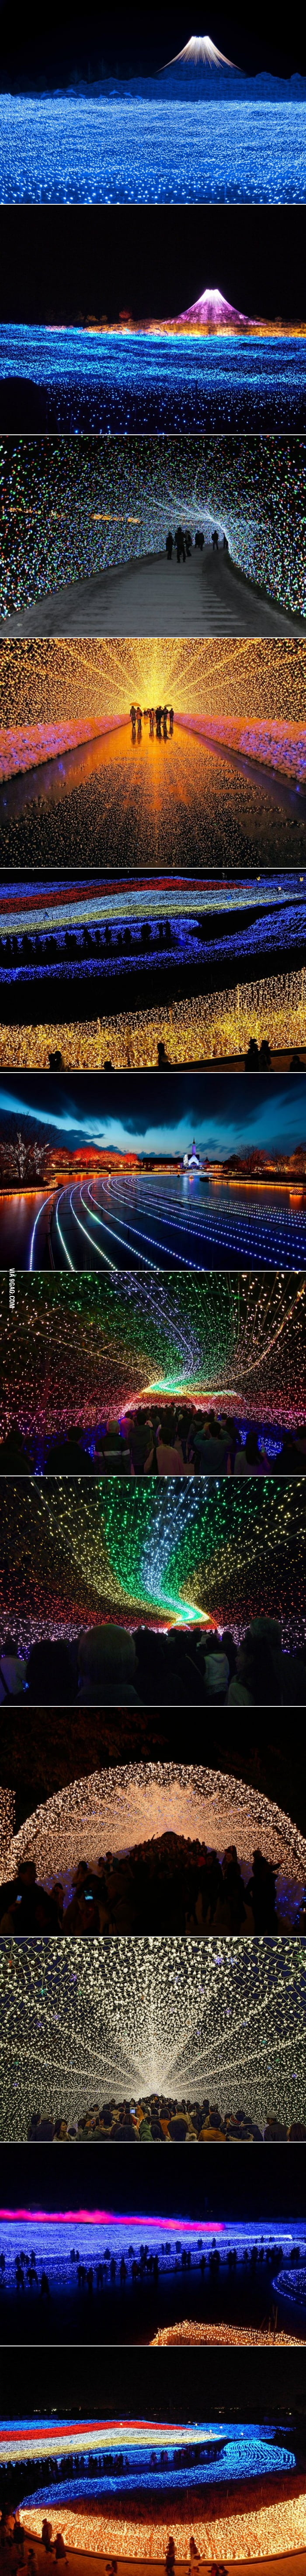 Japan's Winter Lights Festival